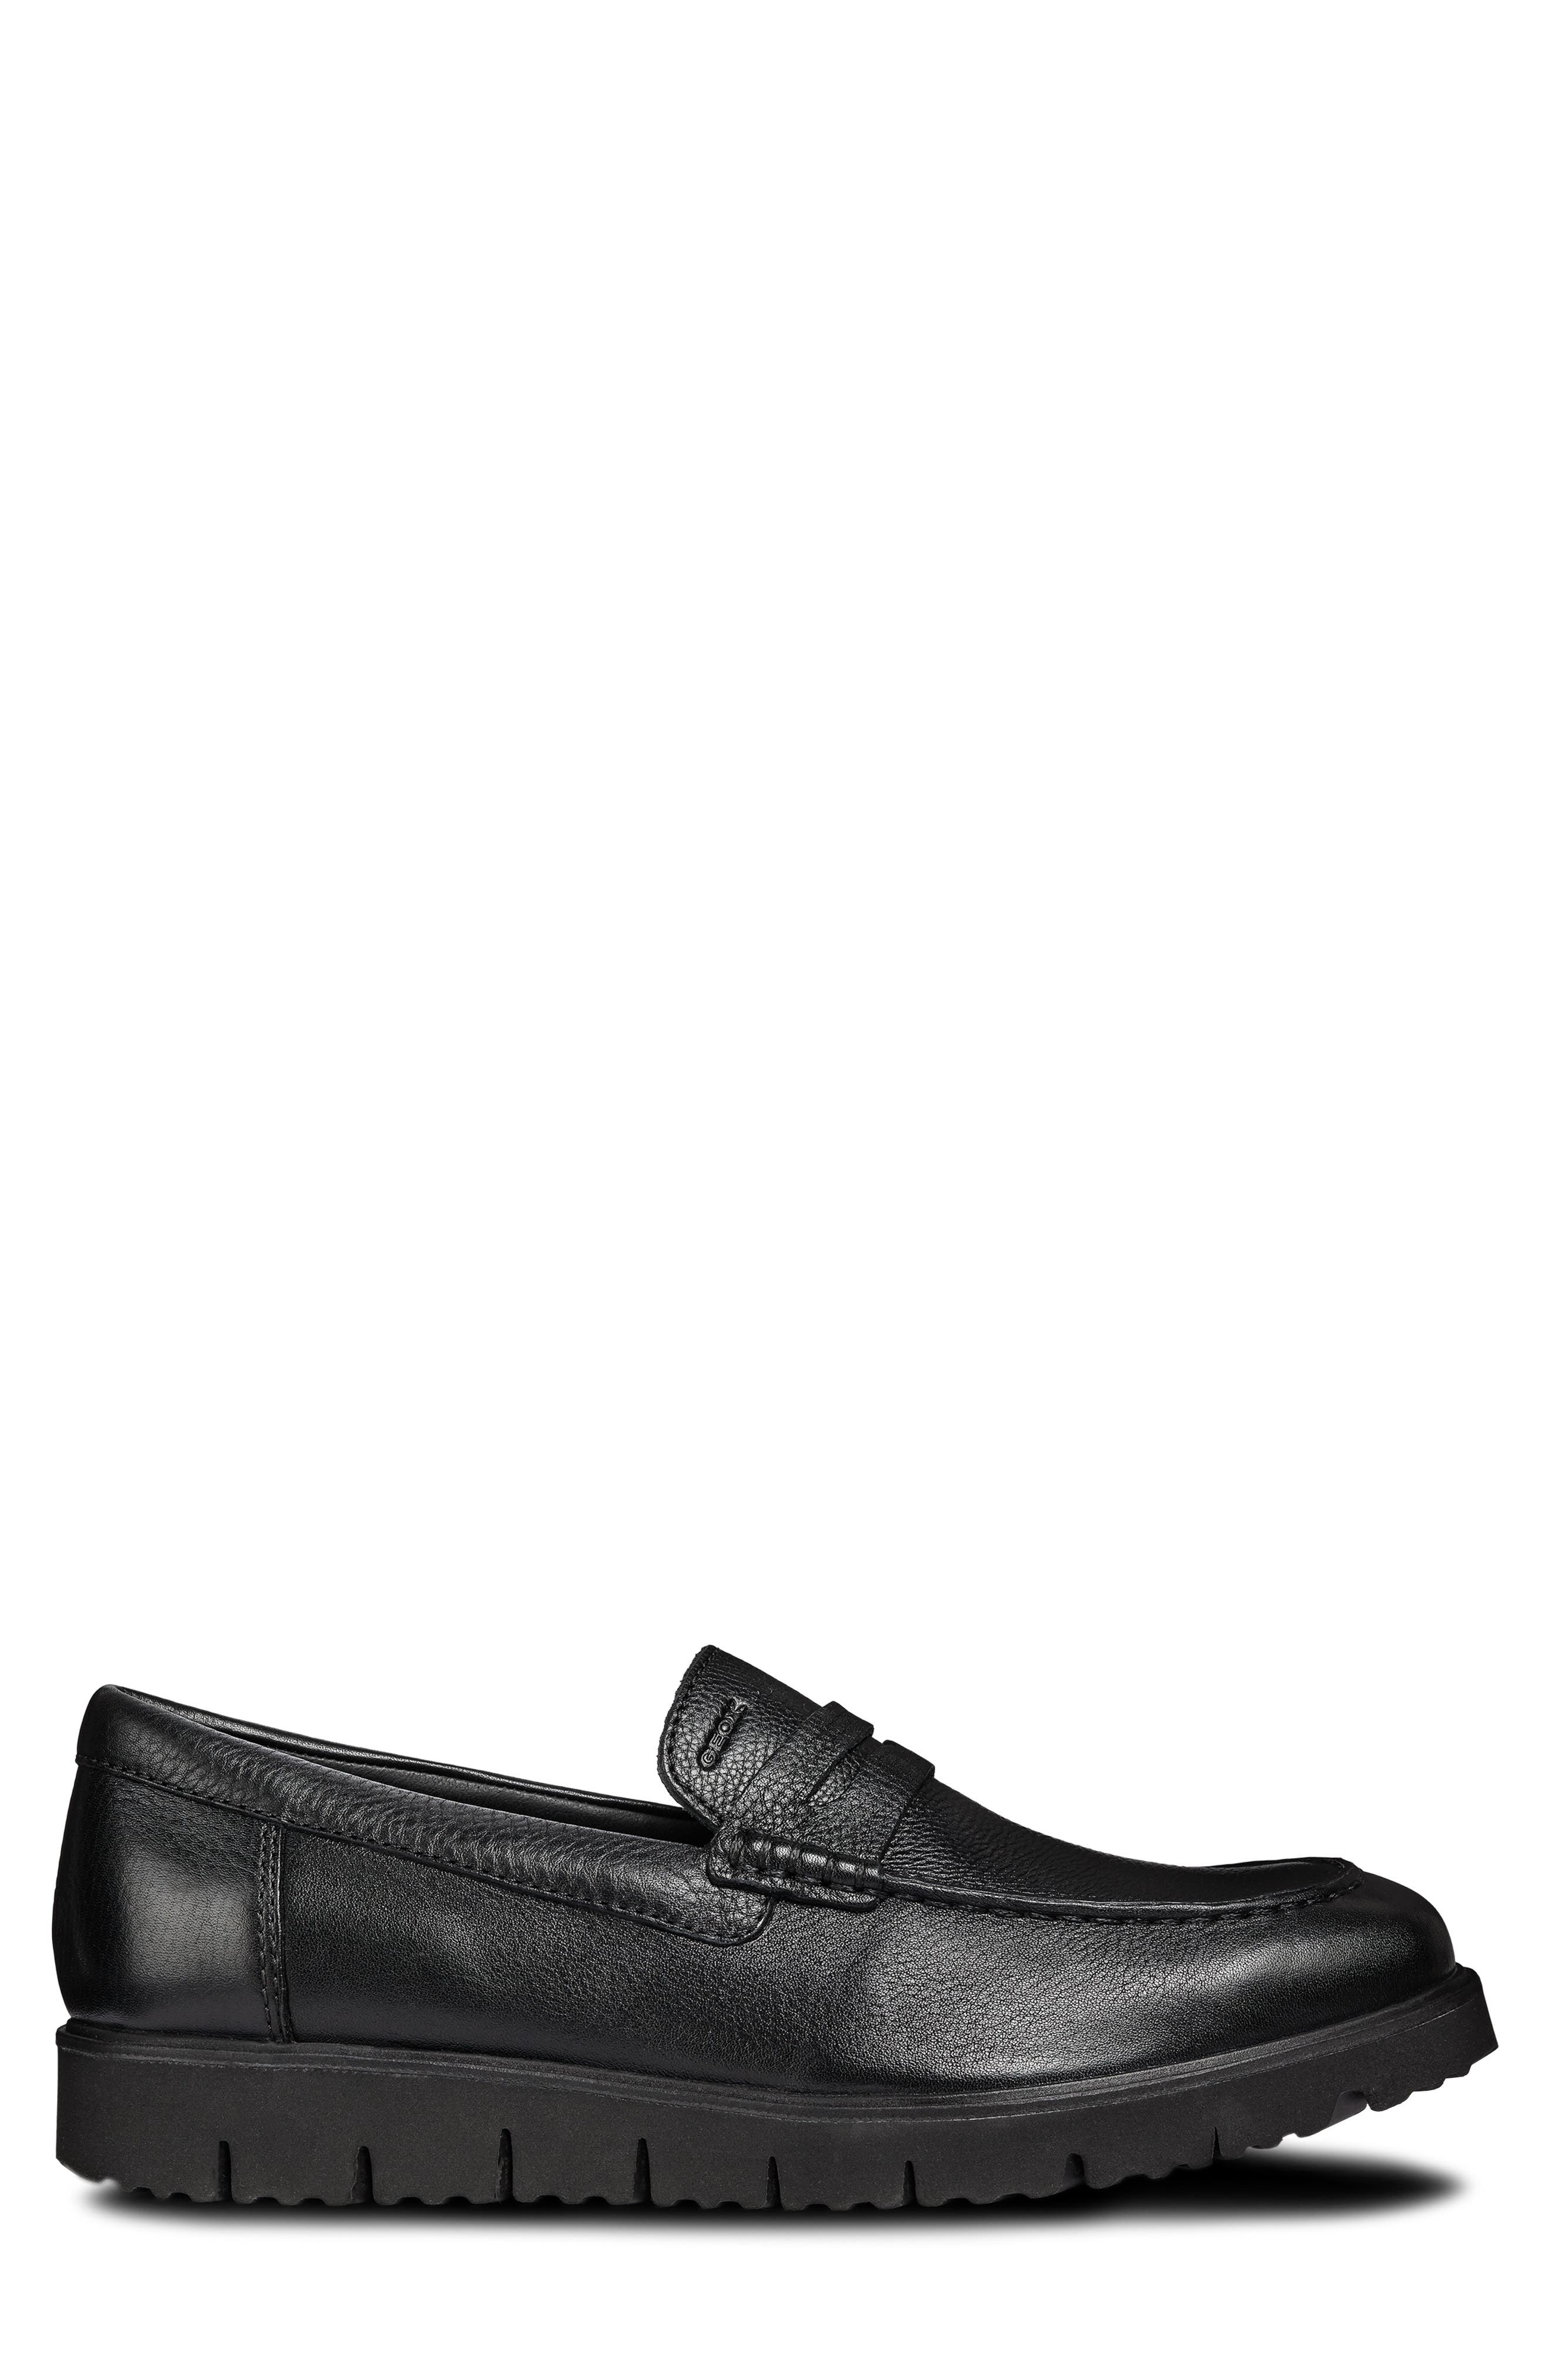 New Pluges 5 Penny Loafer,                             Alternate thumbnail 3, color,                             BLACK LEATHER